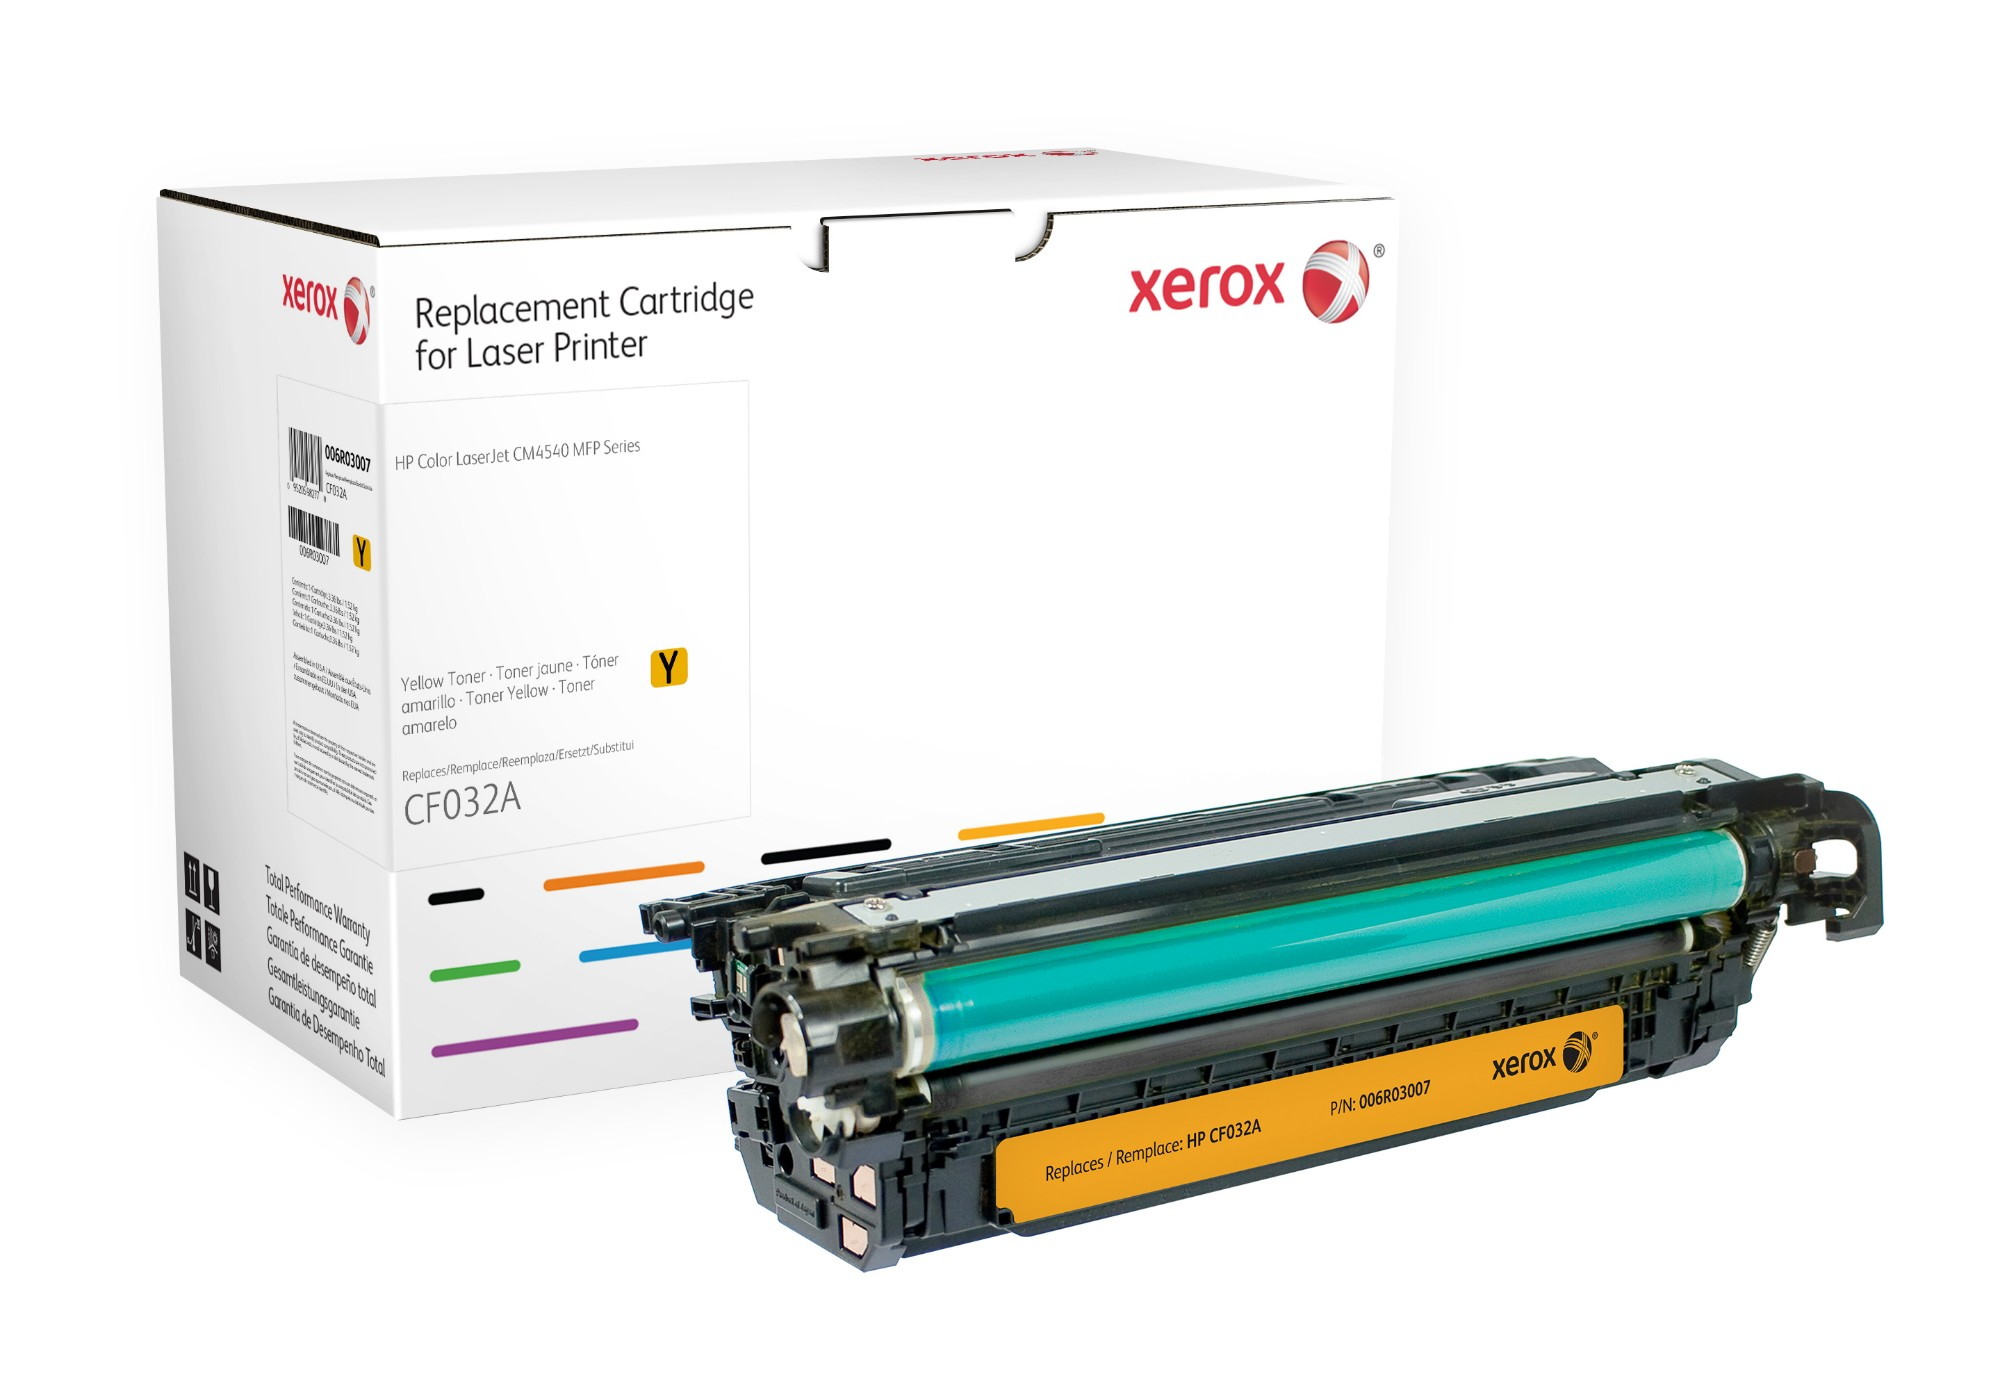 Xerox 006R03007 compatible Toner yellow, 12.5K pages (replaces HP 646A)